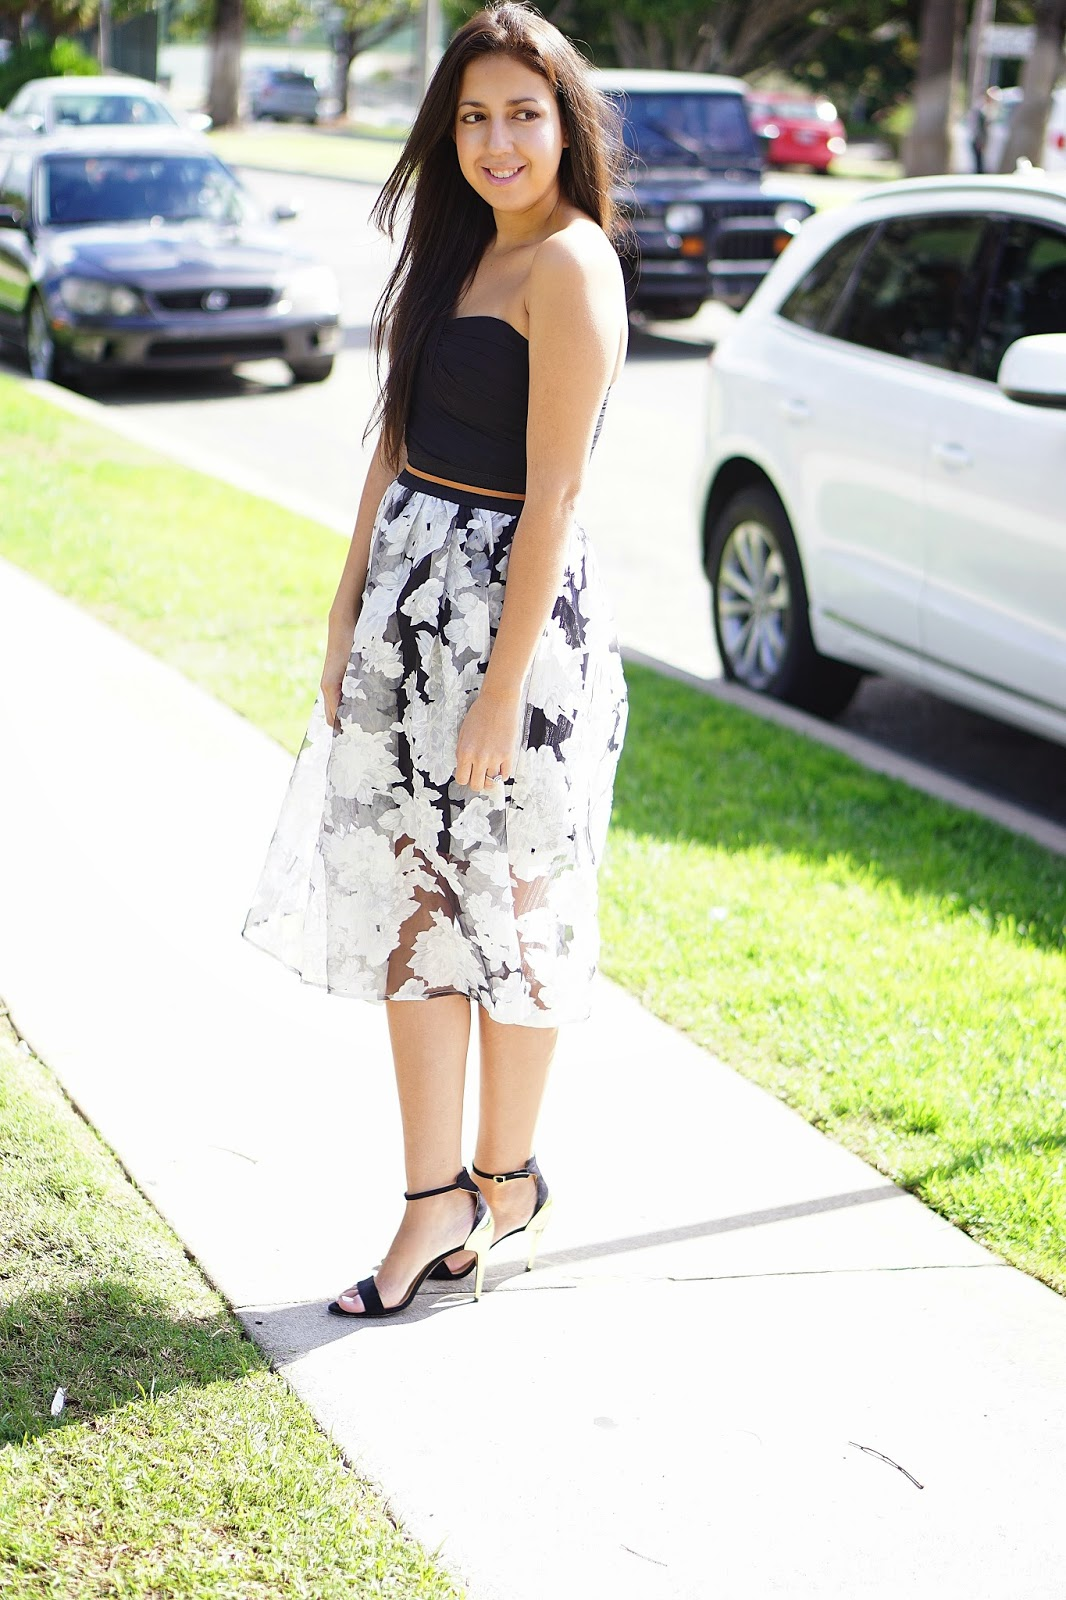 Express, Windsor, Windsor Store, Windsor Store Ivory Floral Midi Skirt, Zara heels, Express One Shoulder Black Dress, How To Make An Old Dress New Again, Perfect Fall Midi Skirt, Mesh Overlay Midi Skirt, Floral Print Midi Skirt